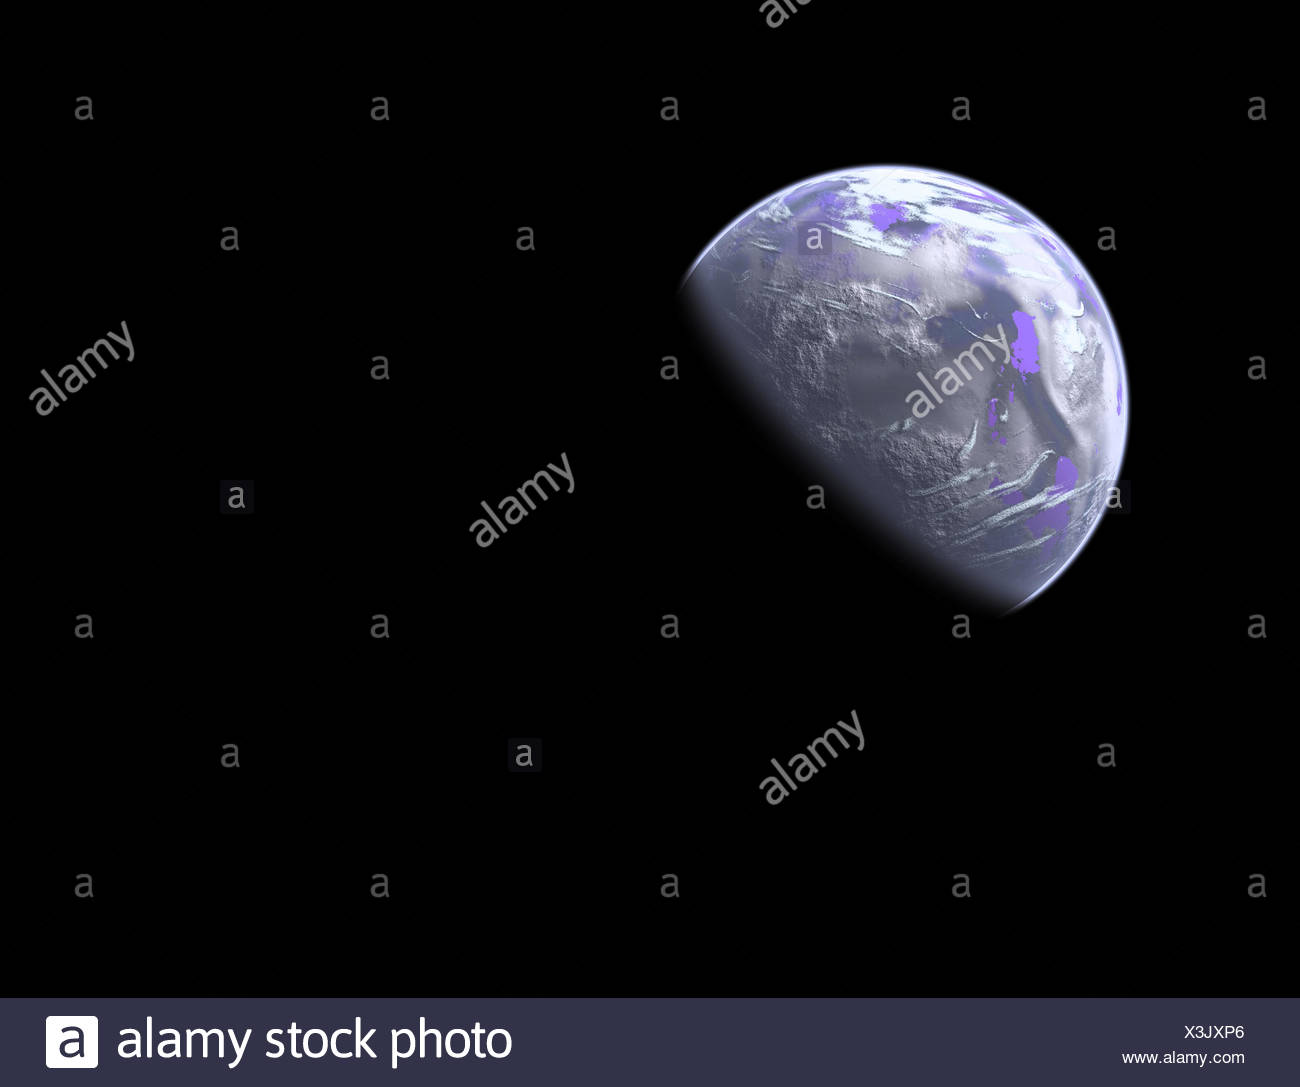 earthlike planet in space - Stock Image